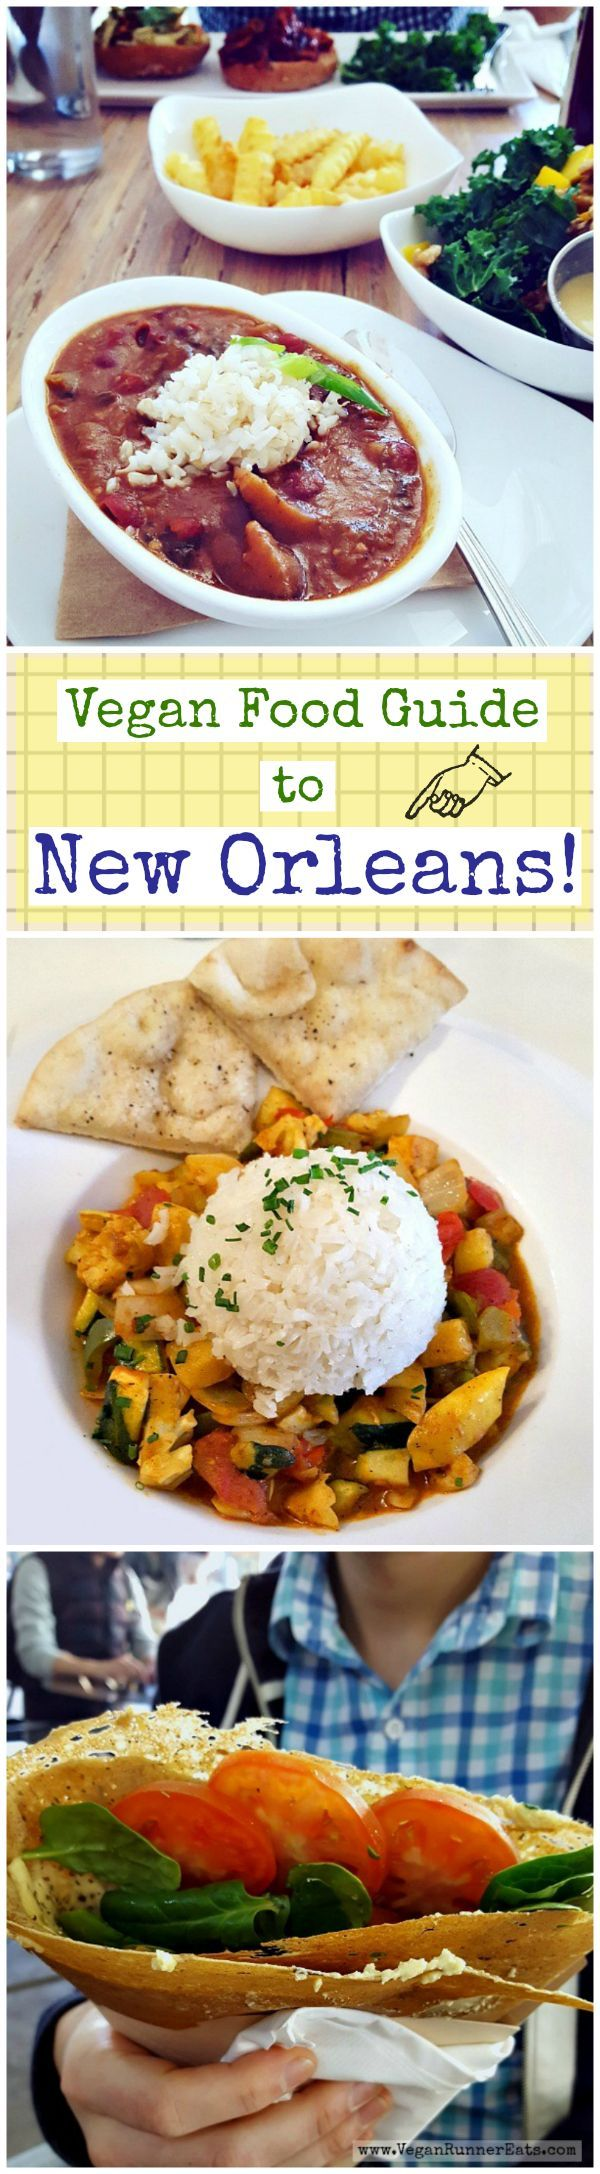 Vegan food and restaurant guide to New Orleans